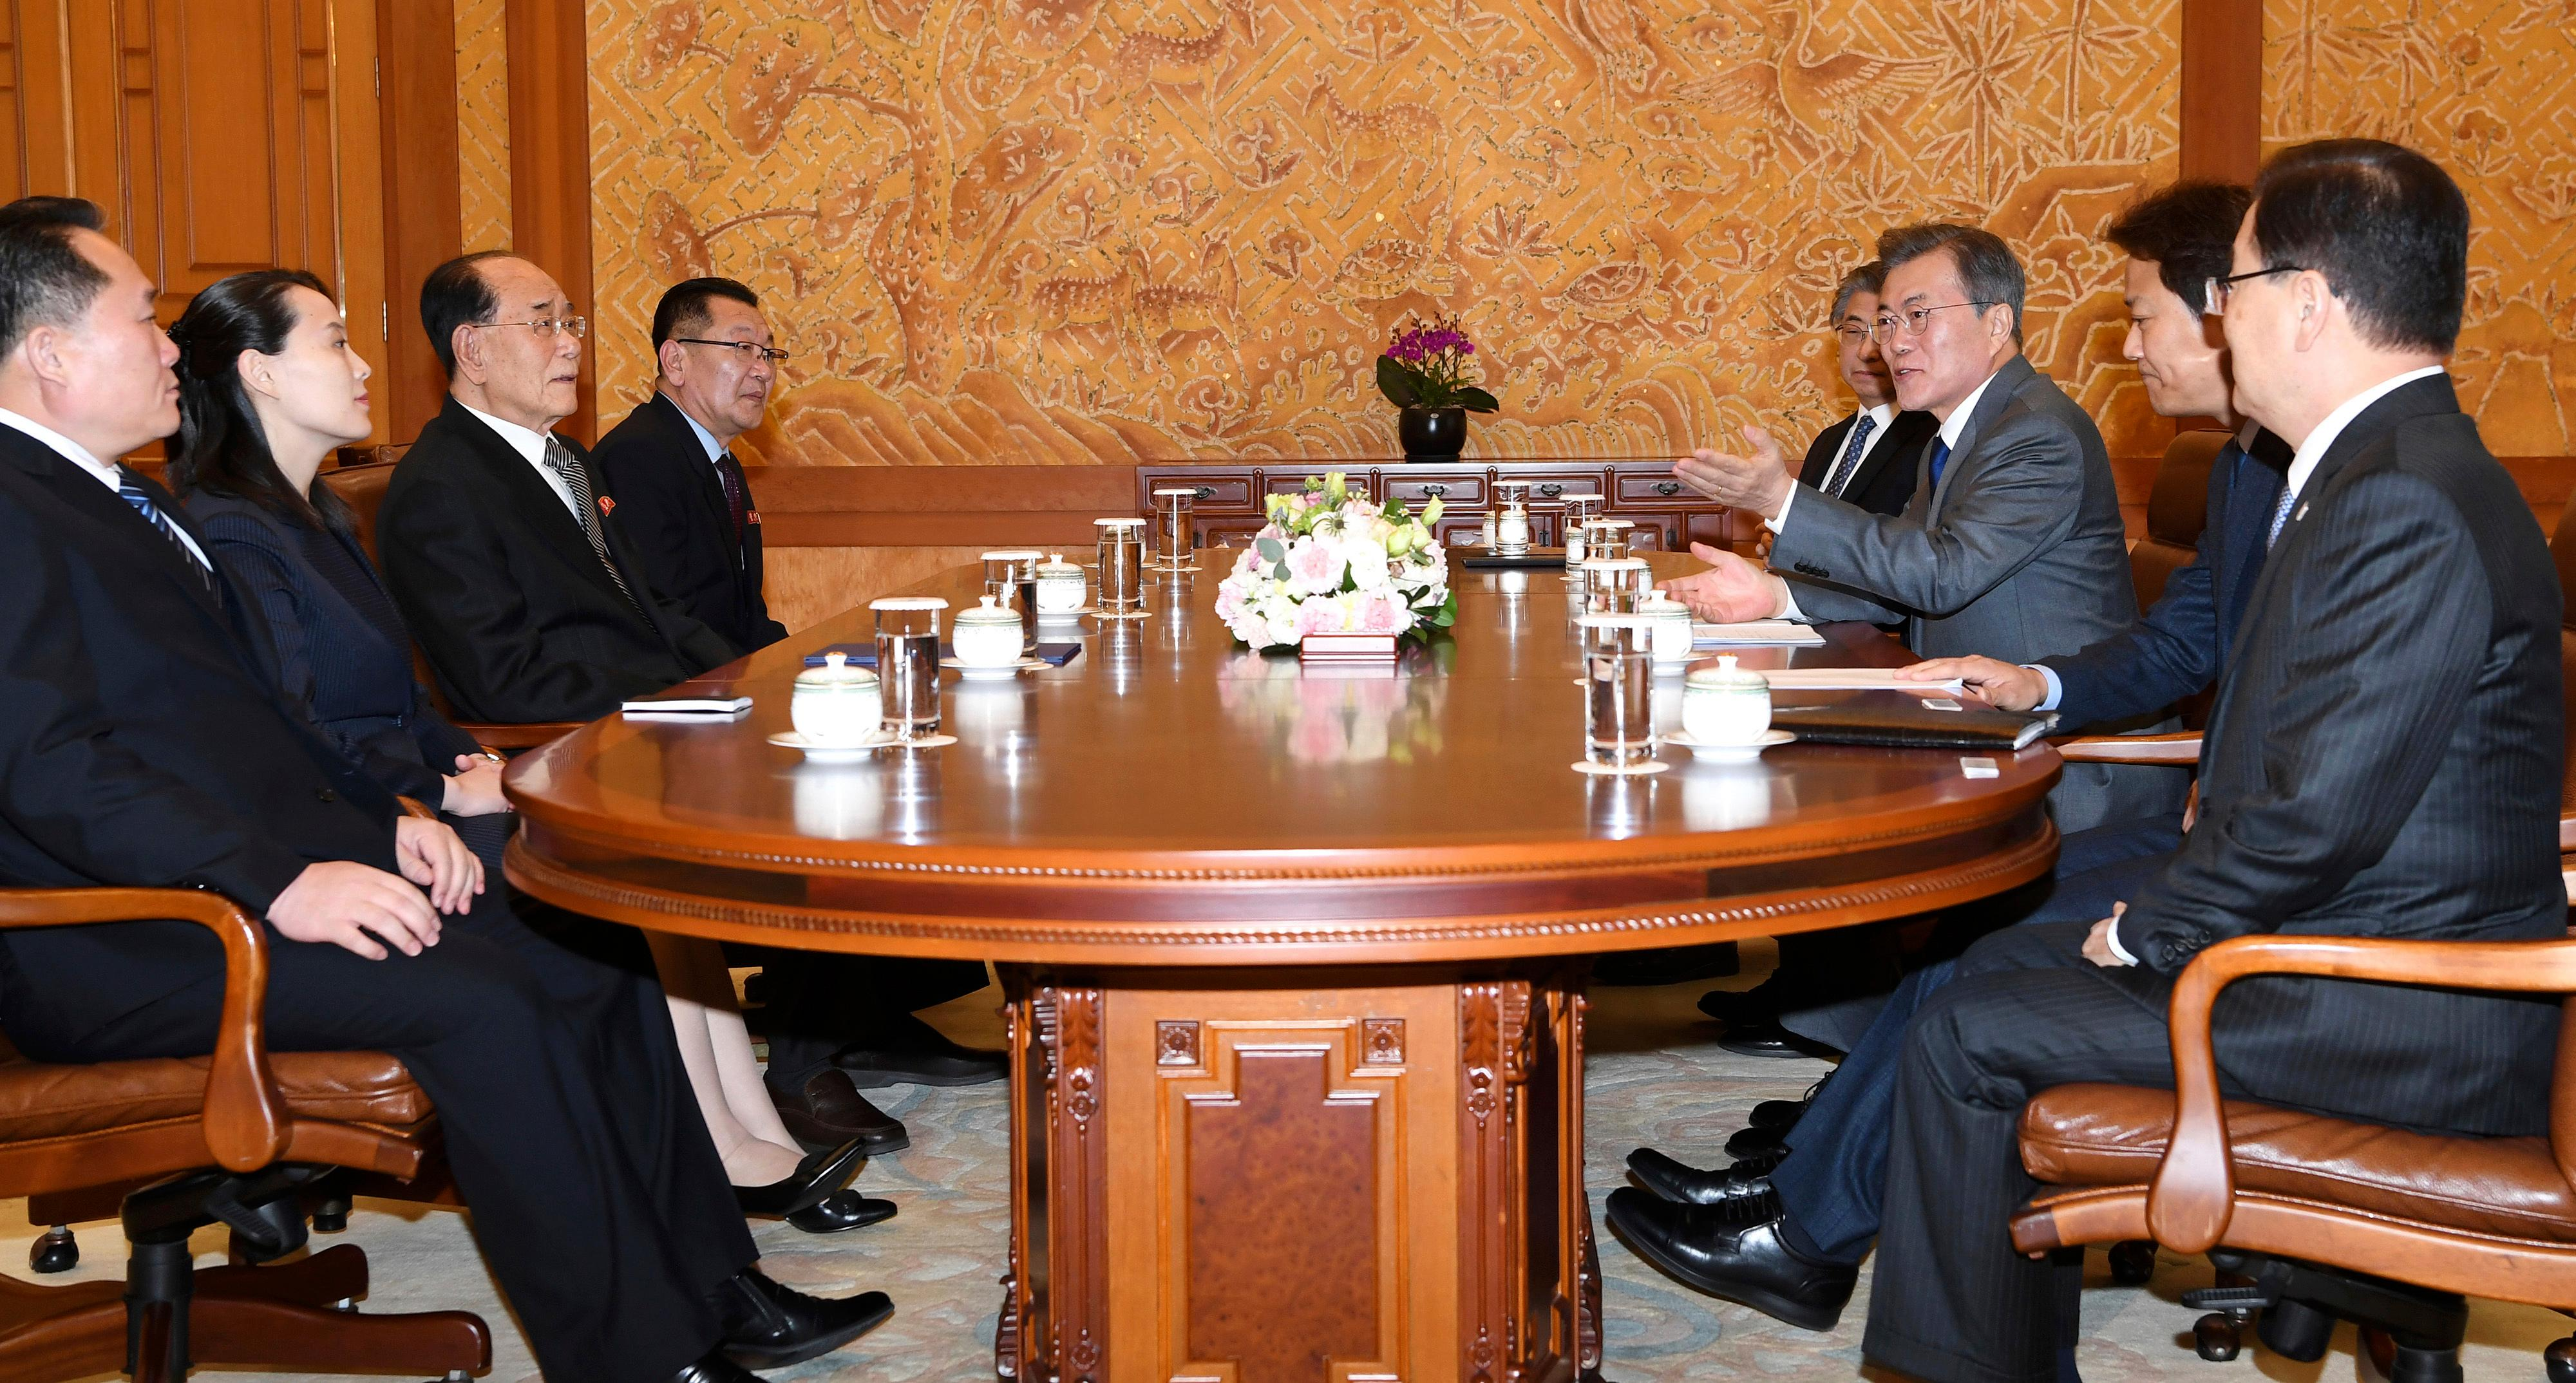 South Korean President Moon Jae-in, third from right, speaks to Kim Yo Jong, second from left, sister of North Korean leader Kim Jong Un, and North Korean delegation during a meeting at the presidential house in Seoul, South Korea, Saturday, Feb. 10, 2018. President Moon on Saturday met with the senior North Korean officials over lunch at Seoul's presidential palace in the most significant diplomatic encounter between the rivals in years. (Kim Ju-sung/Yonhap via AP)